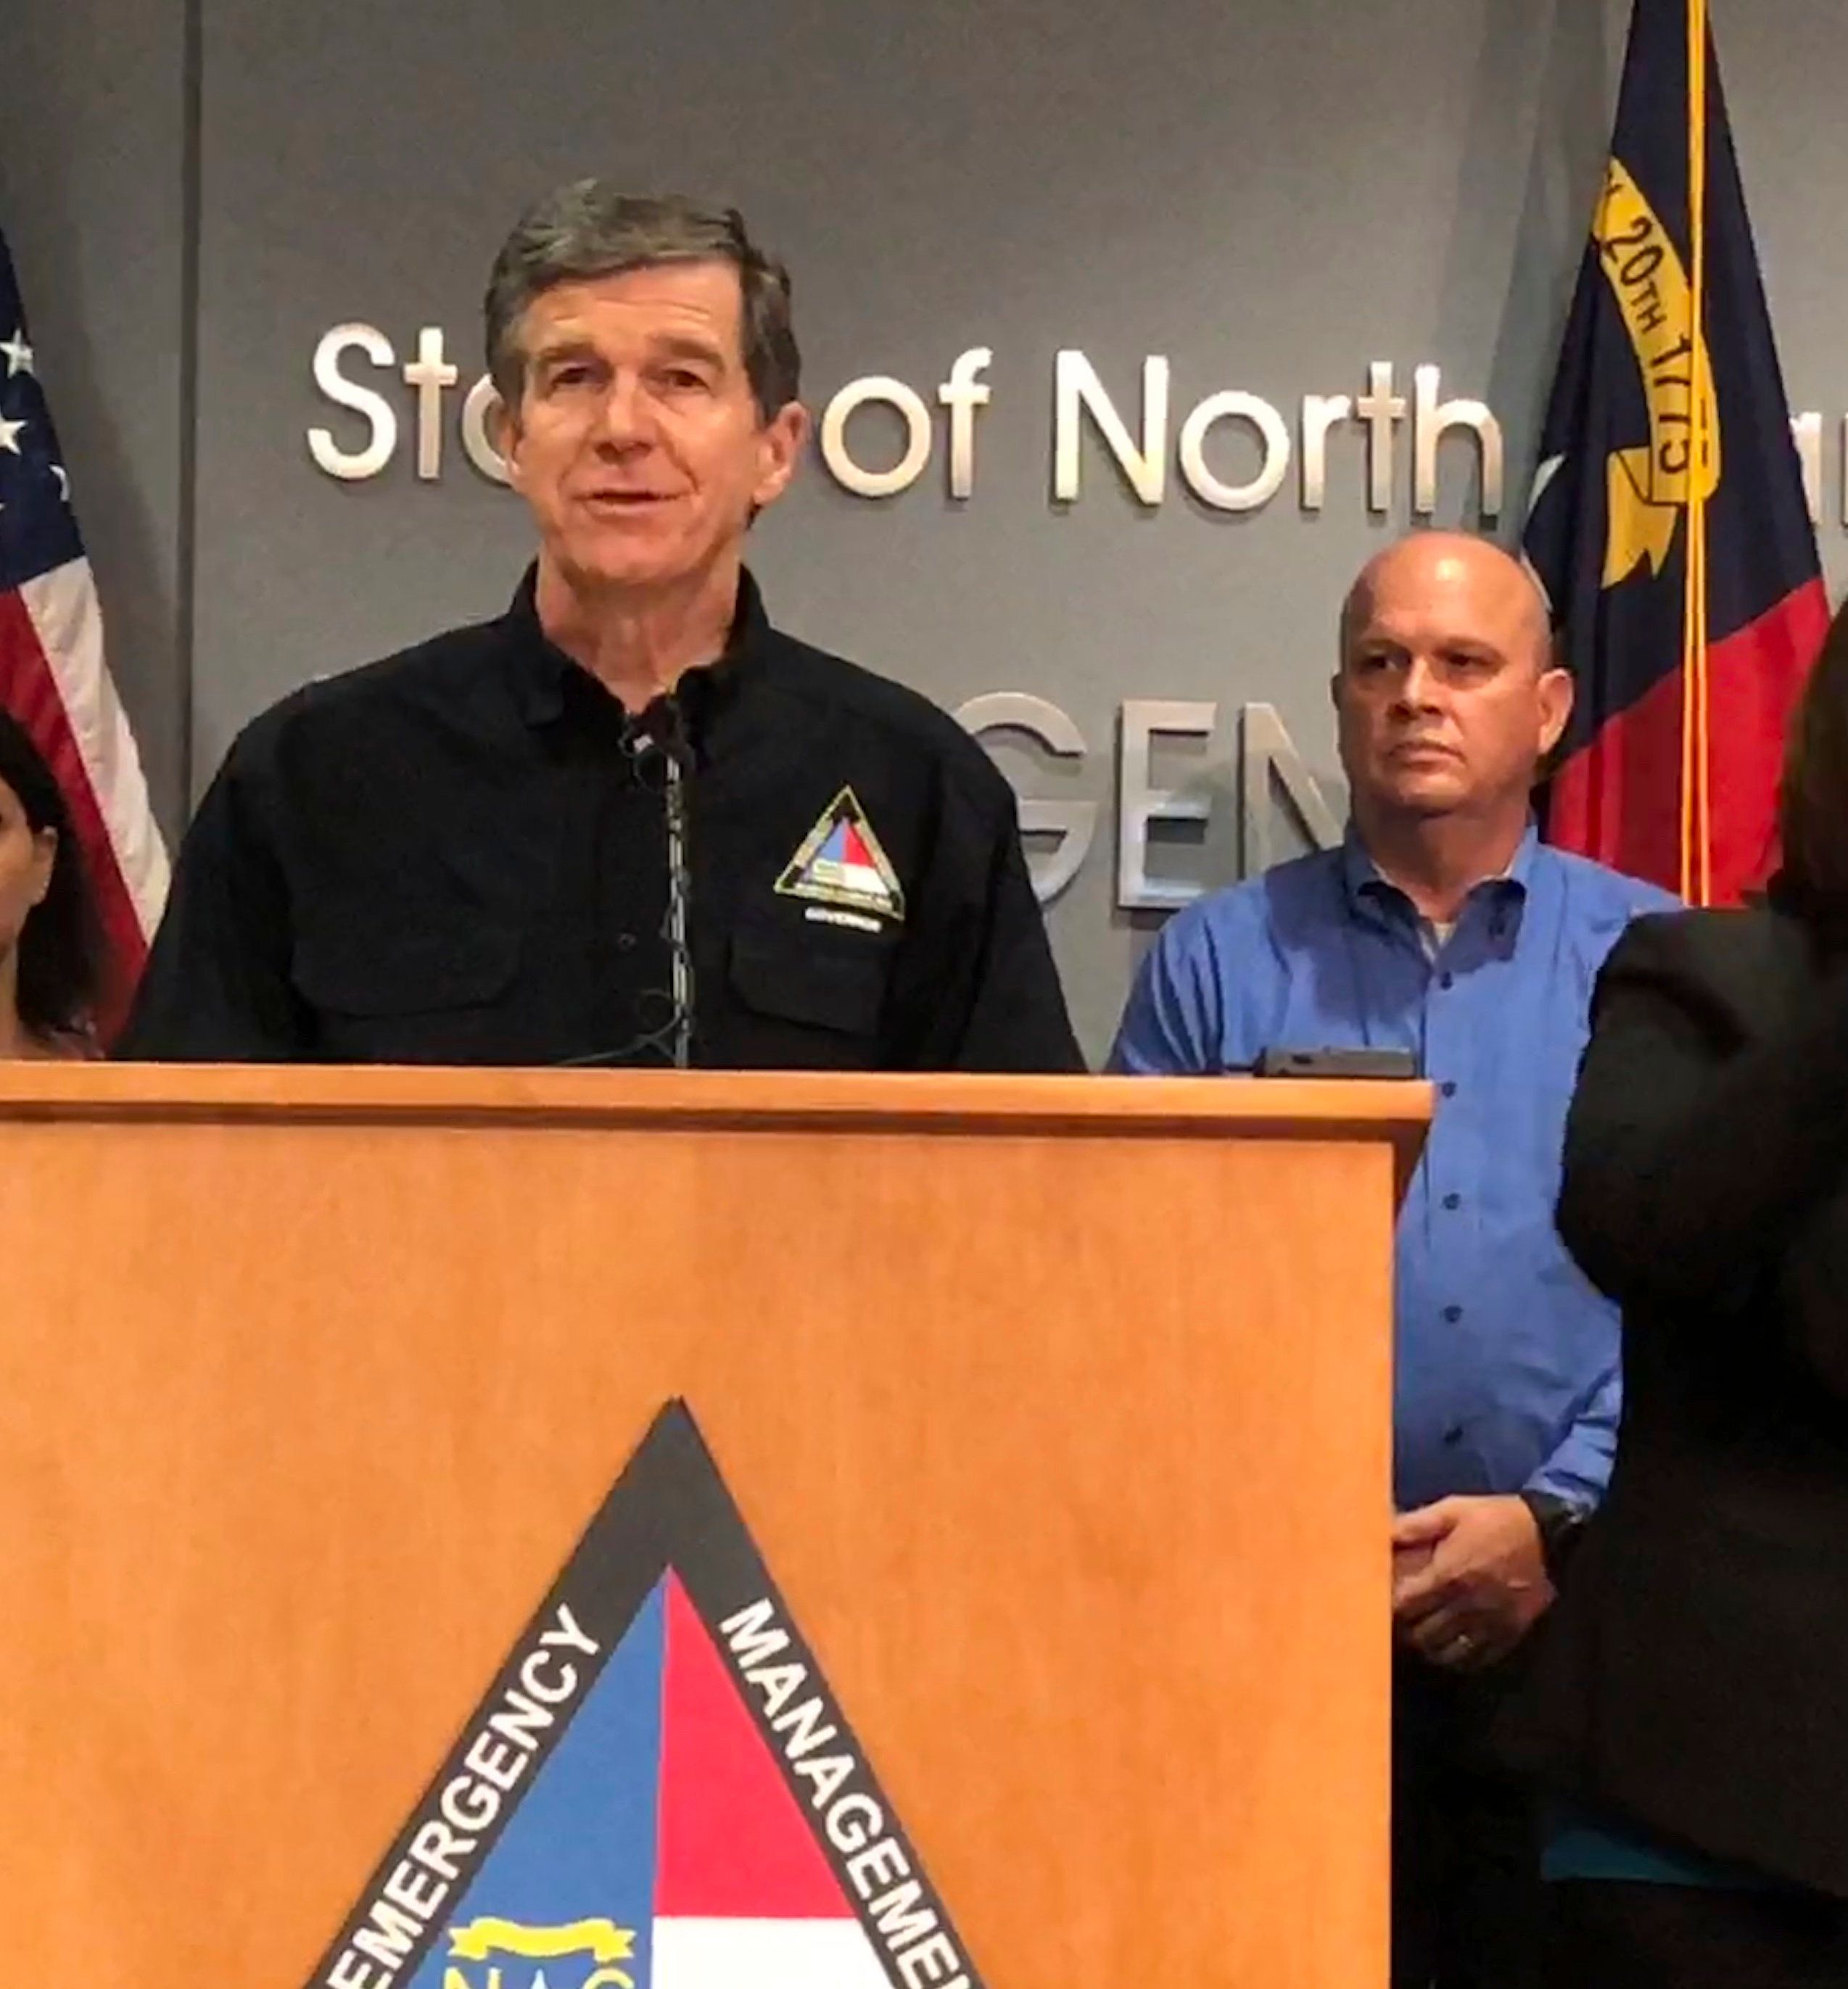 In this Sept. 12, 2018 photo, North Carolina Gov. Roy Cooper, left, speaks at a news conference about Hurricane Florence preparedness as attended by state Transportation Secretary Jim Trogdon, right, listens in Raleigh, N.C. Cooper has been praised by many, including Republicans, for his handling of the state's immediate response to Florence (AP Photo/Gary D. Robertson)